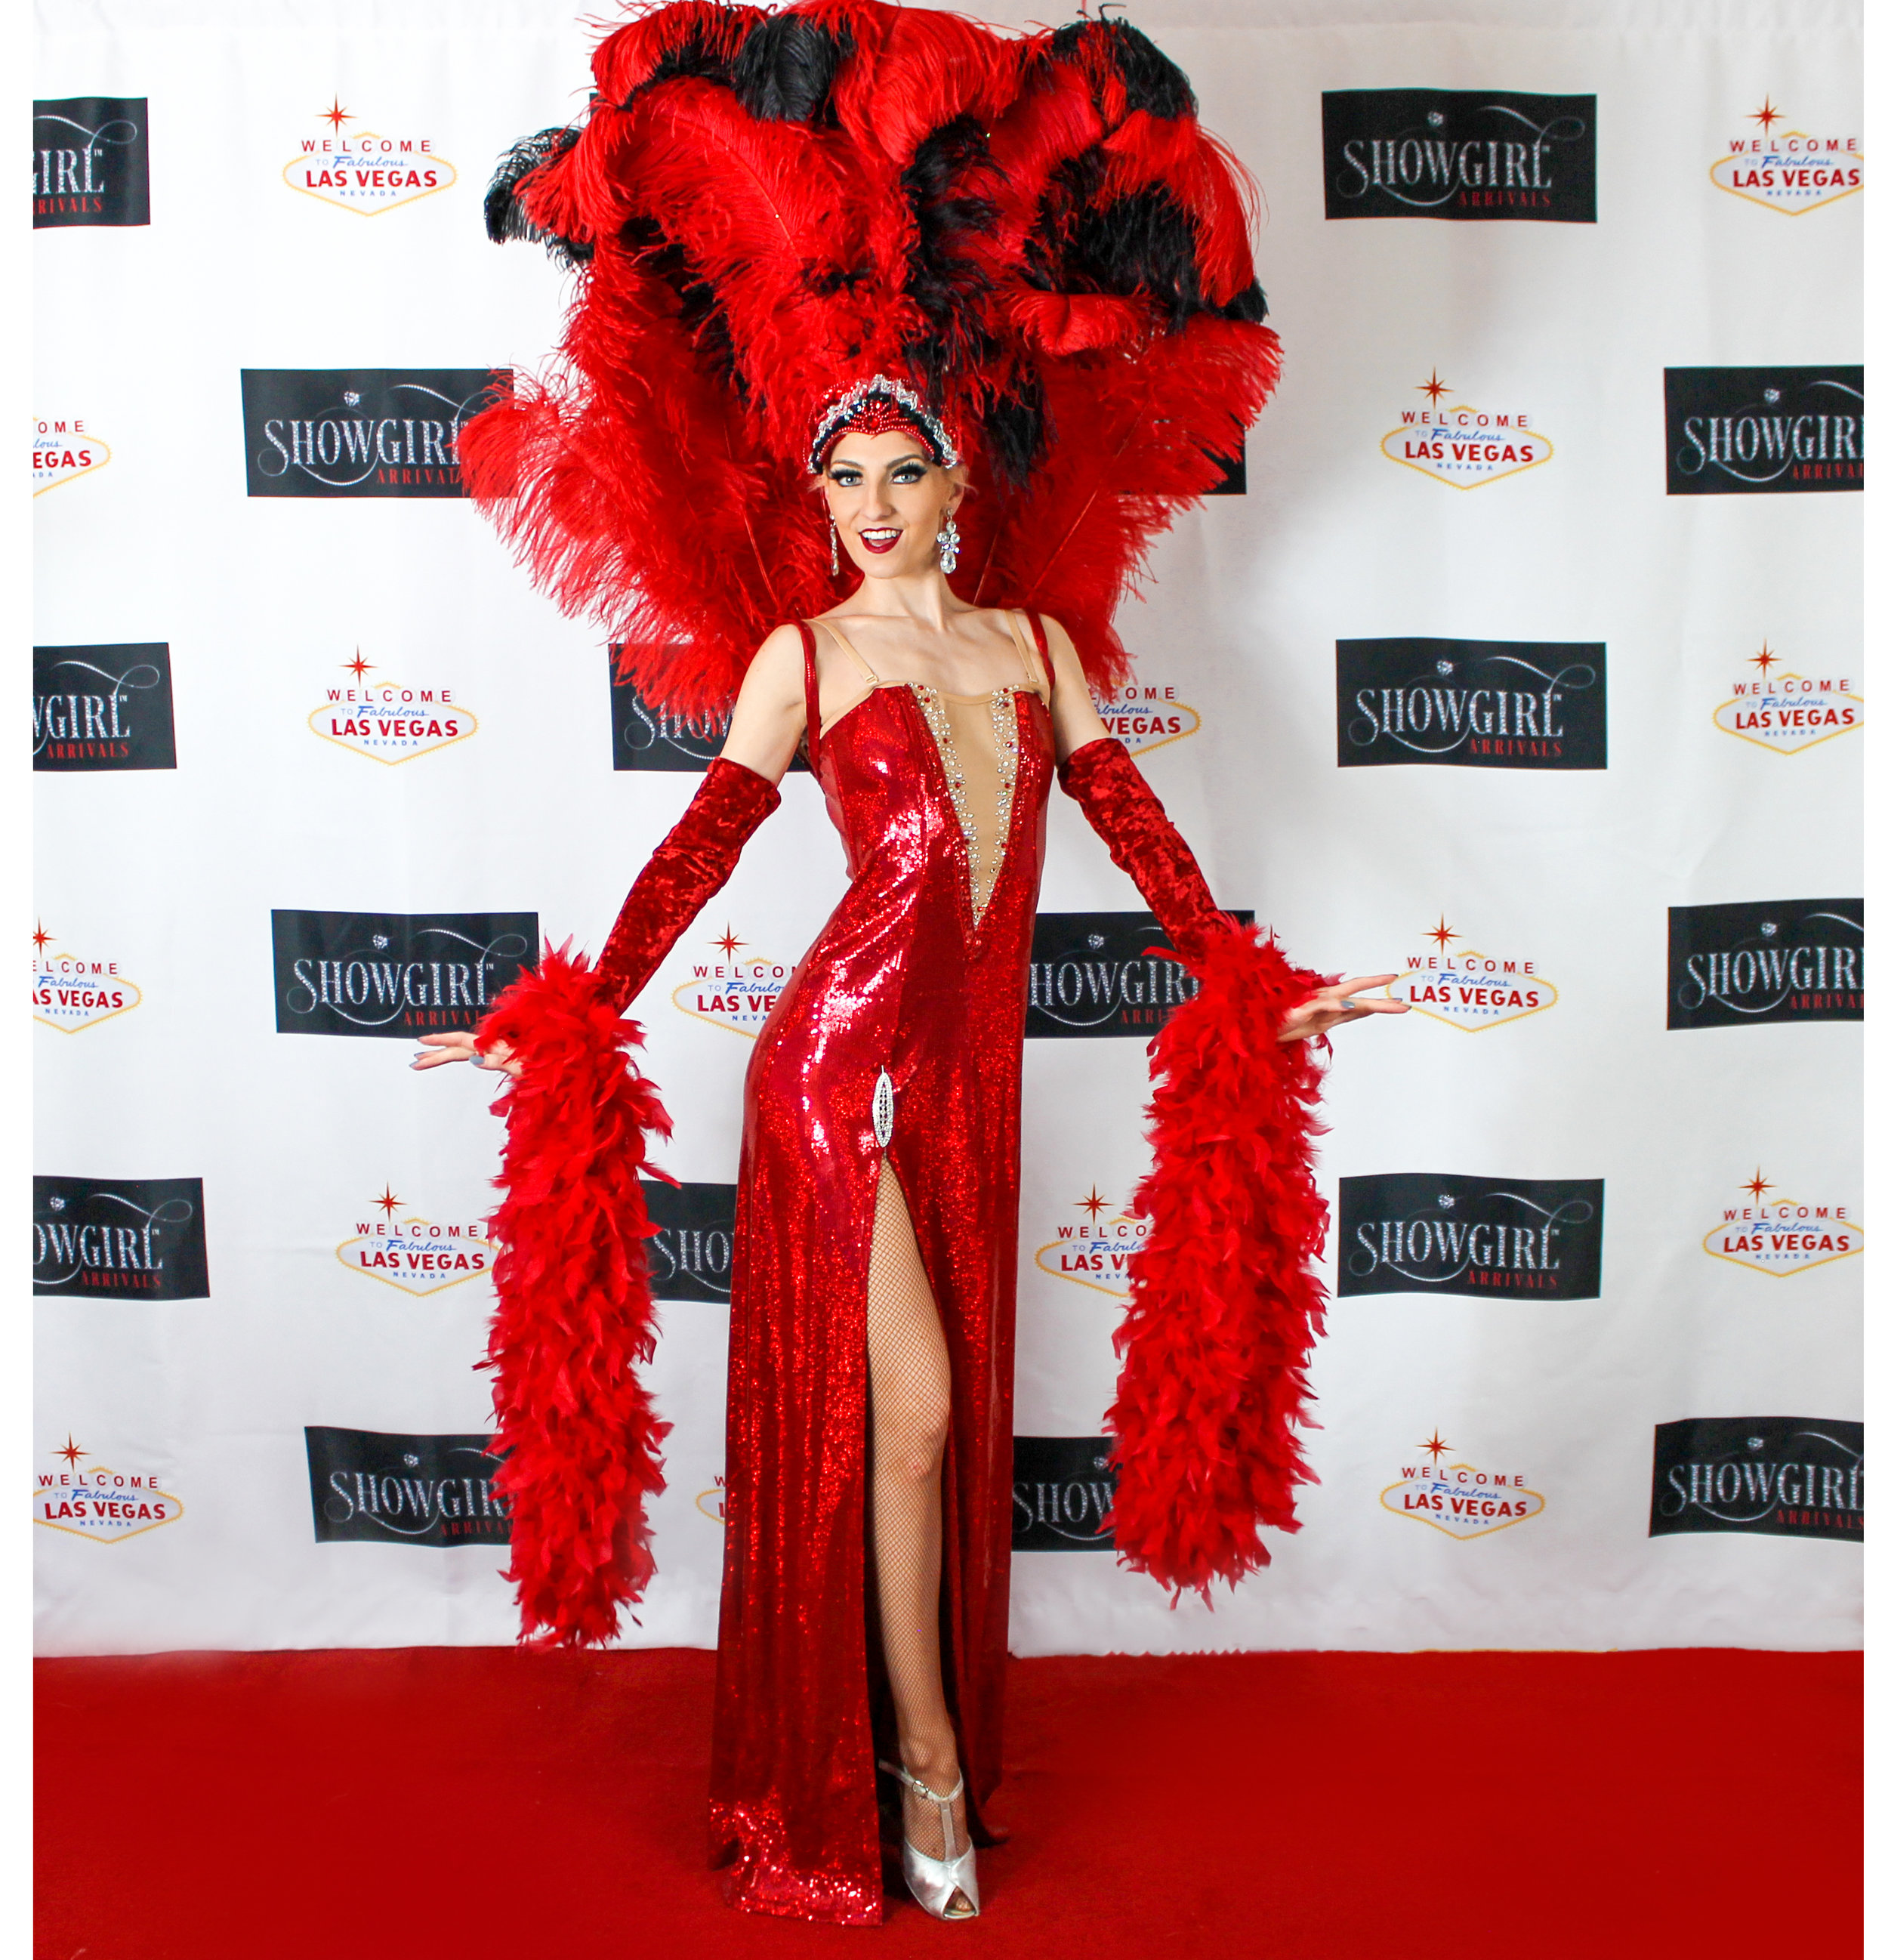 Showgirl Arrivals One Piece Costume